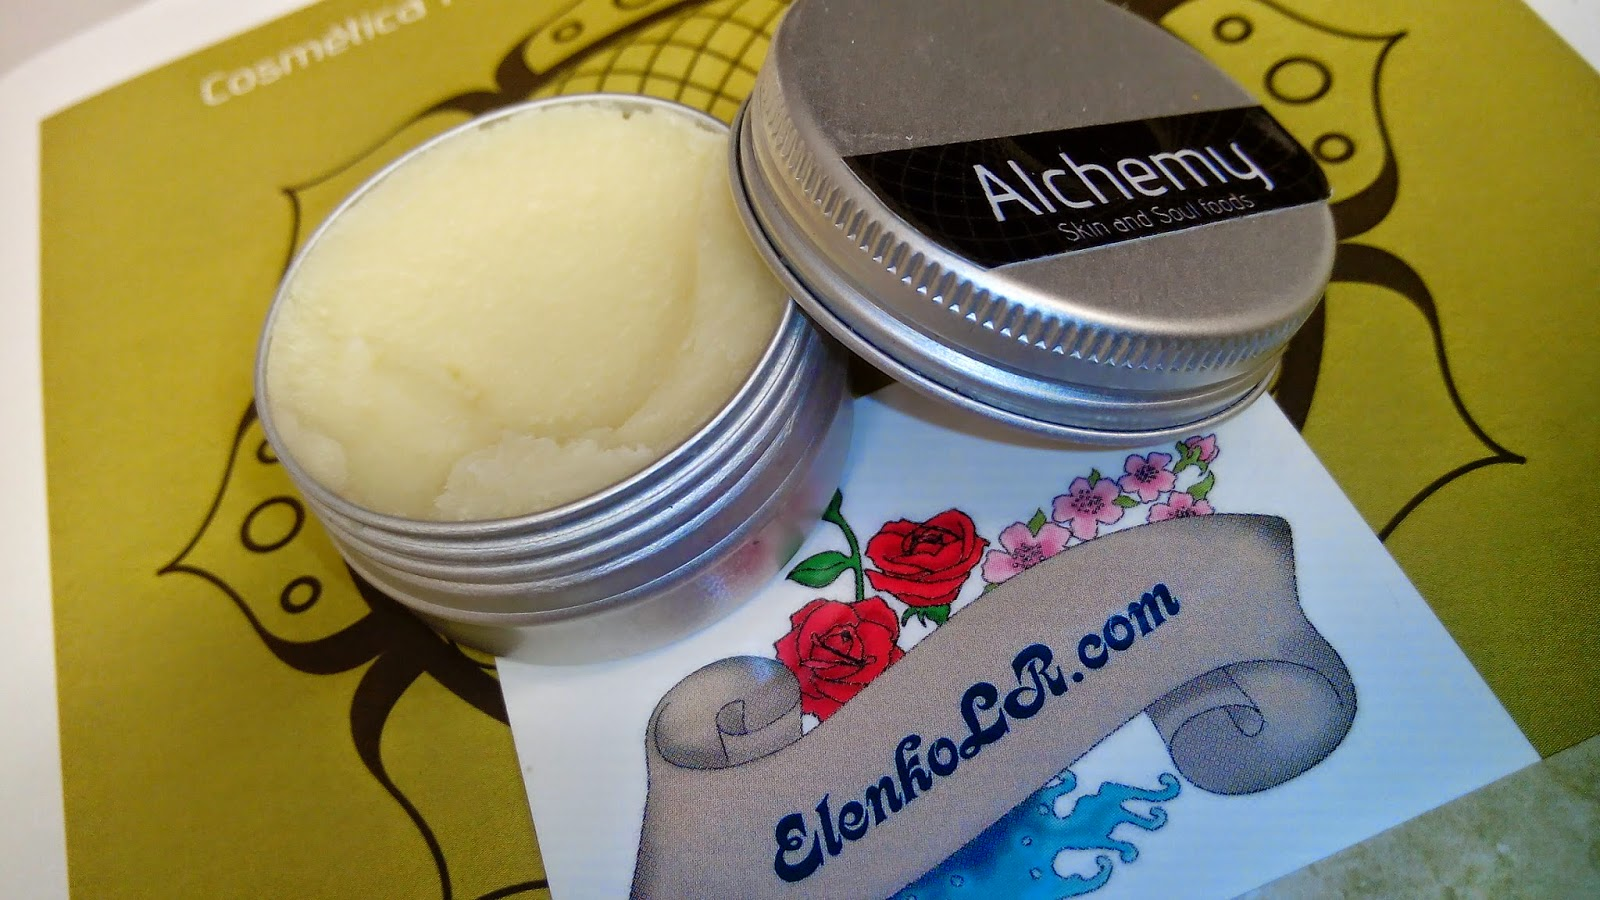 blog moda cosmetica natural alchemy